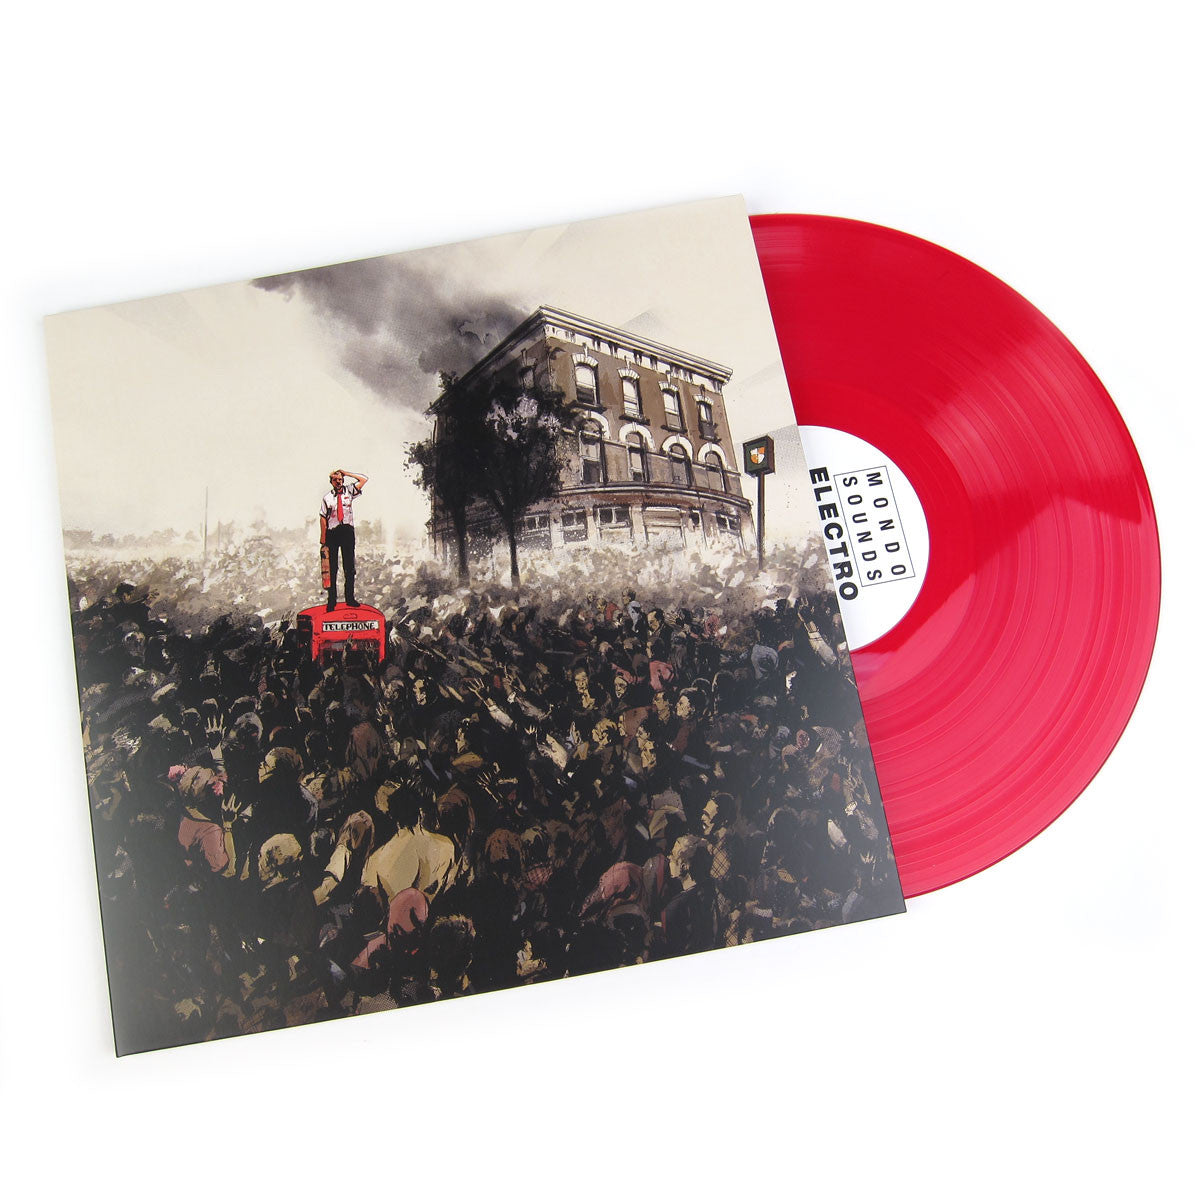 Daniel Mudford & Pete Woodhead: Shaun Of The Dead Score (180g, Colored Vinyl) Vinyl LP